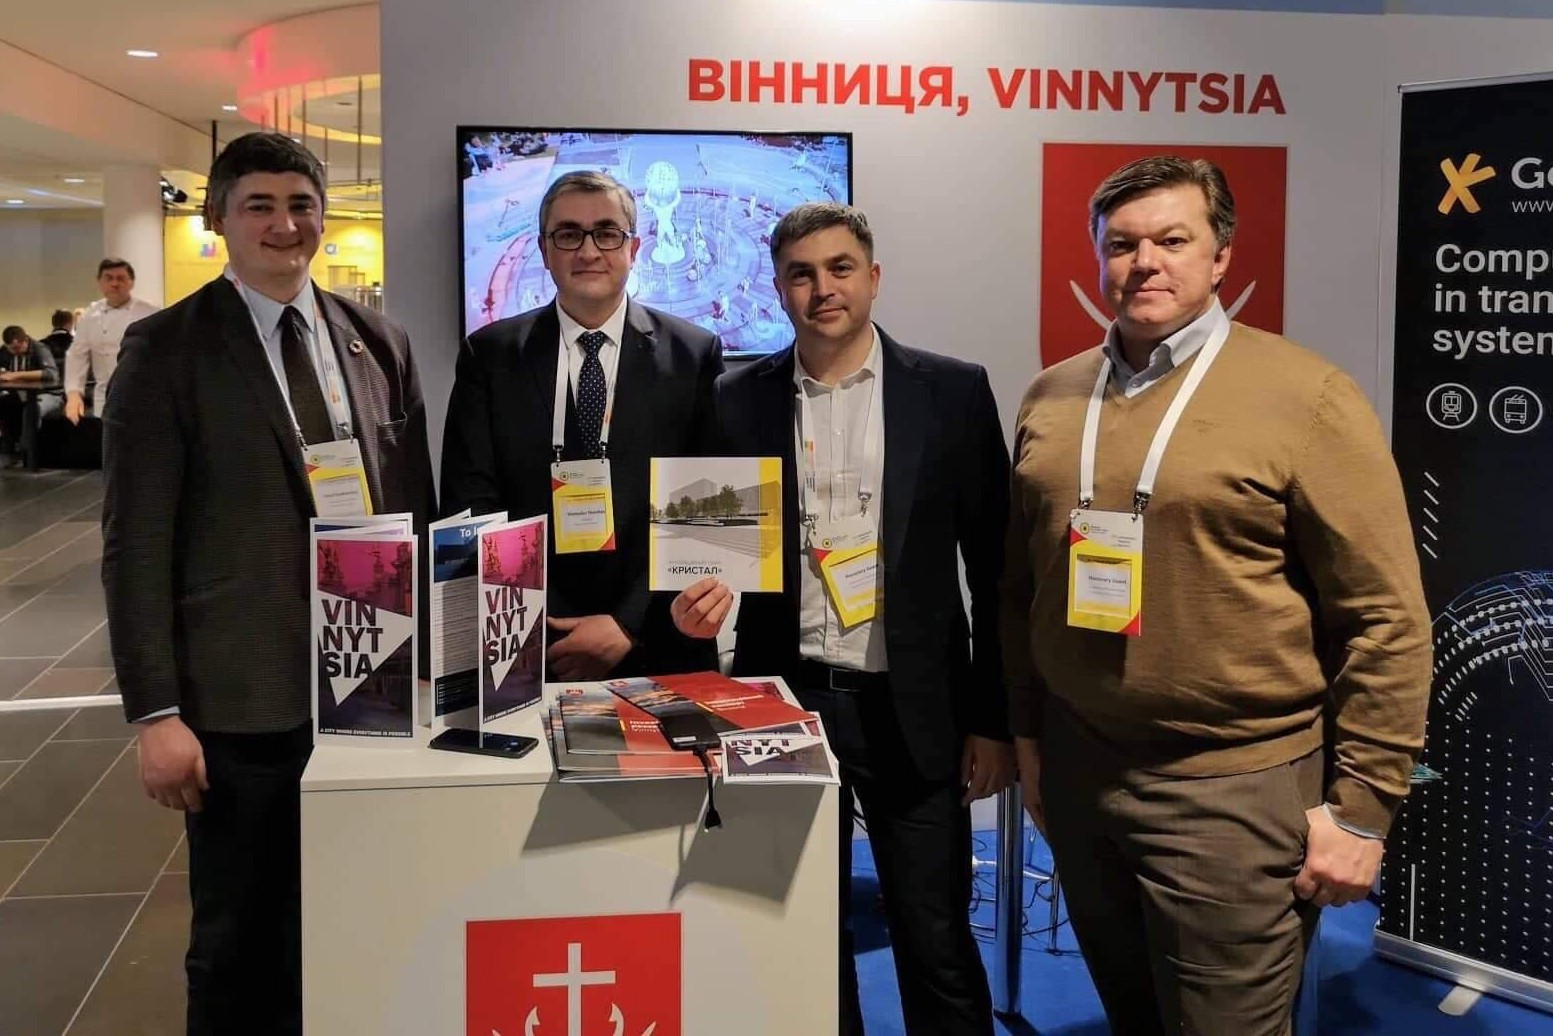 Vinnytsia's projects were presented at the International EXPO Congress